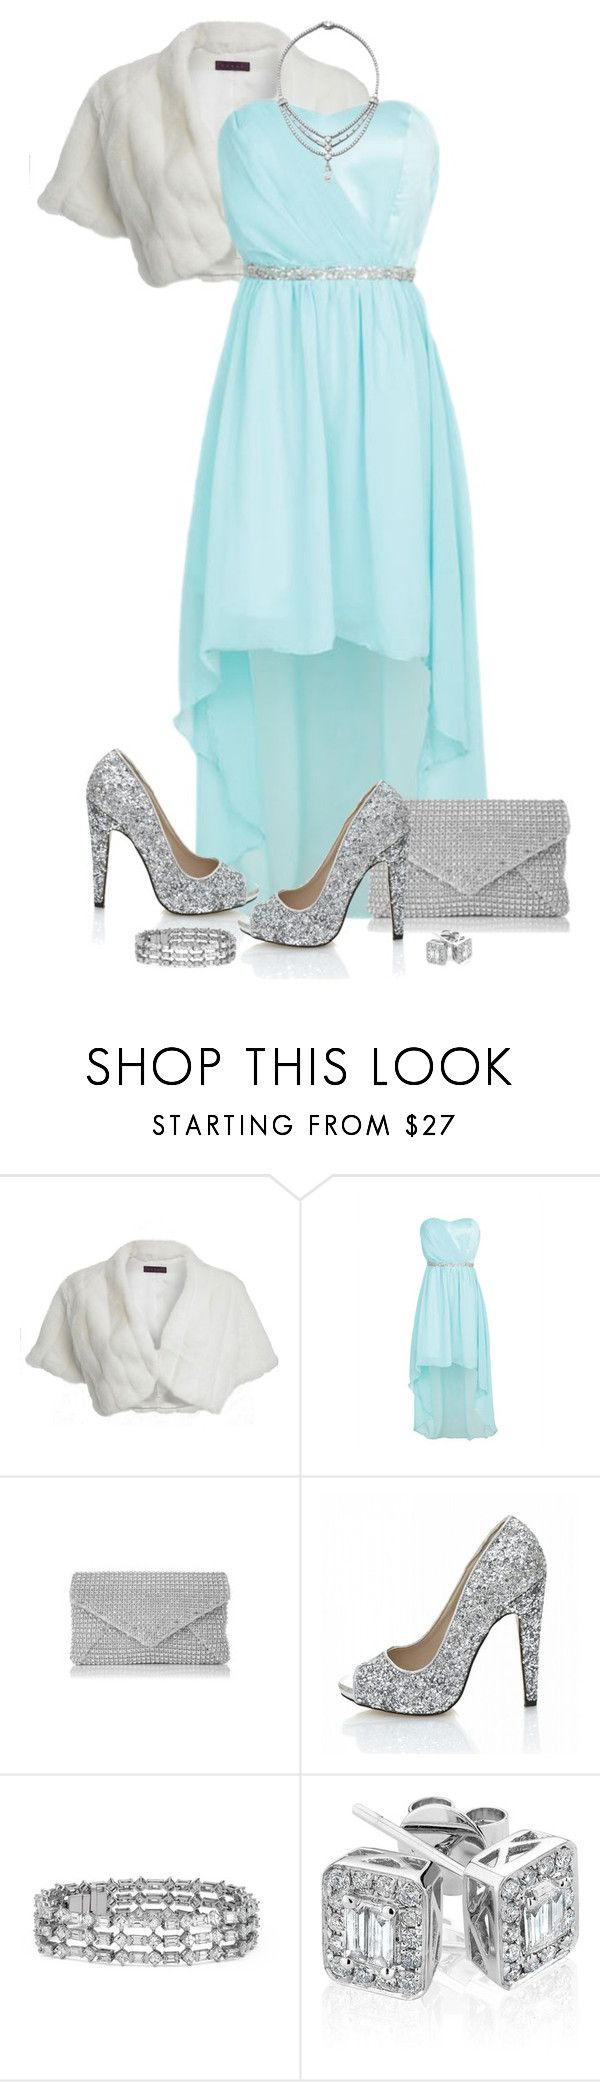 """""""Worth a Mint"""" by asigworth ❤ liked on Polyvore featuring Debut, L.K.Bennett, Quiz, Blue Nile and Reeds Jewelers"""